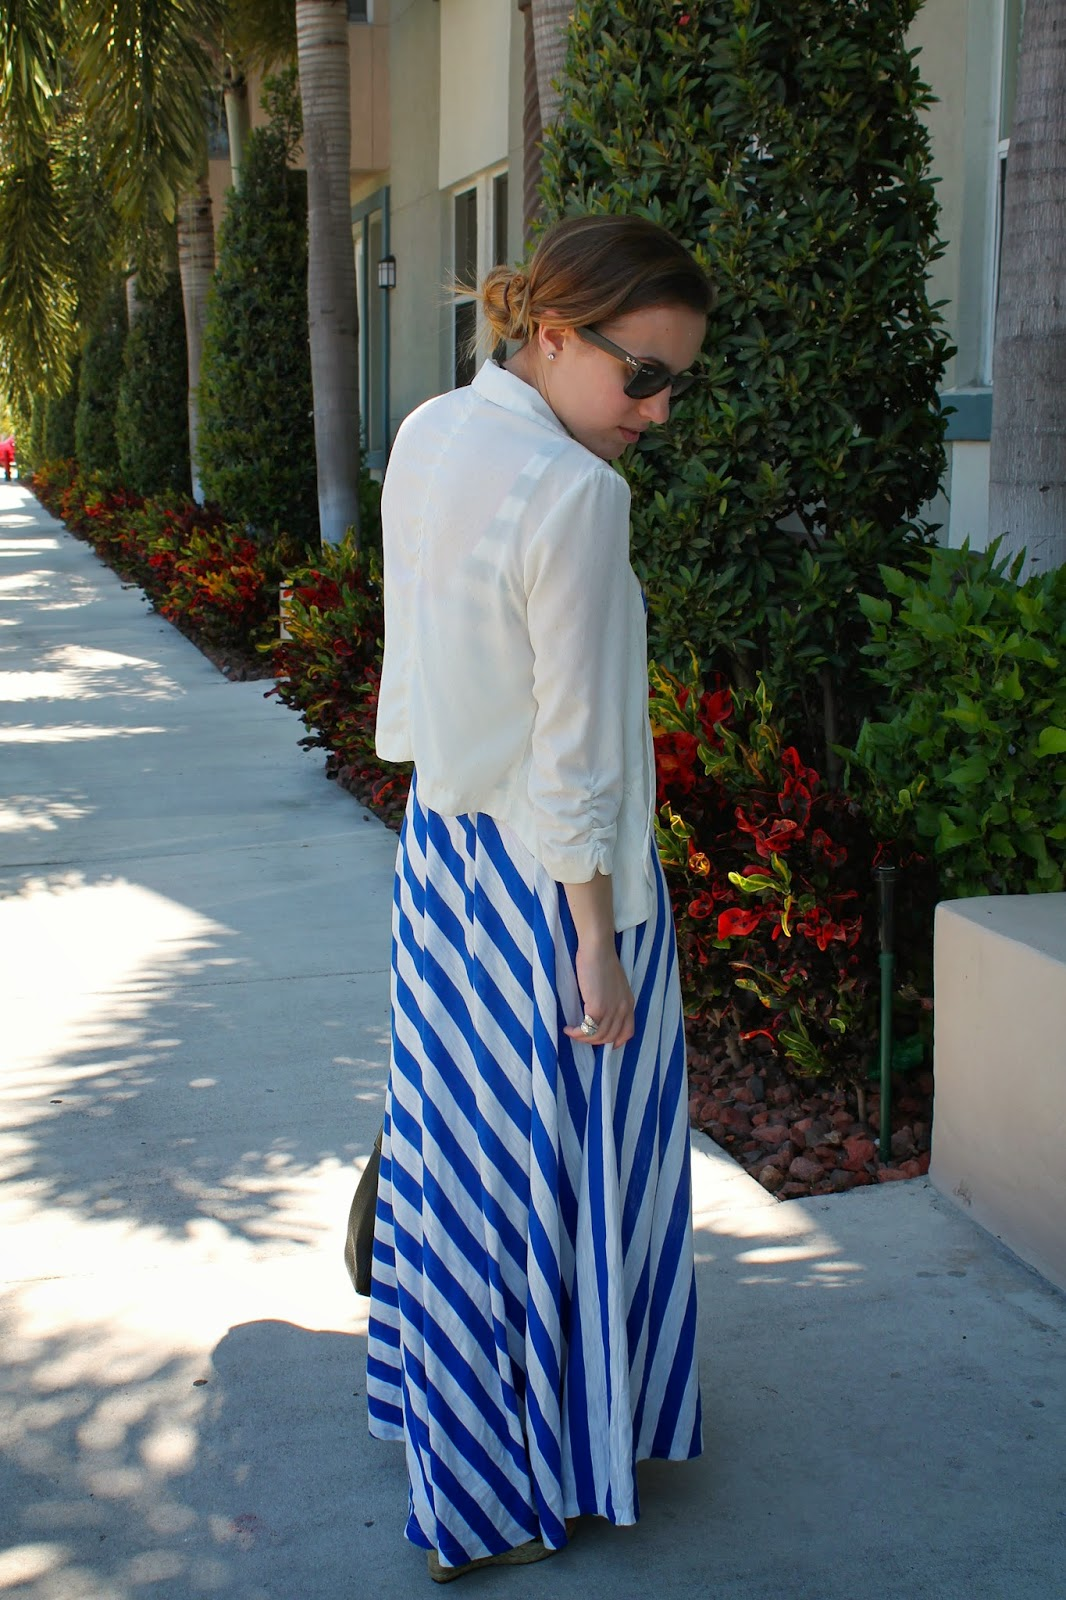 Ann Taylor LOFT, LOFT, Ray-Ban, nautical, prep, studded, horizontal stripes, maxi dress, Kate Spade, feminine, Miami blogger, Miami fashion, Miami